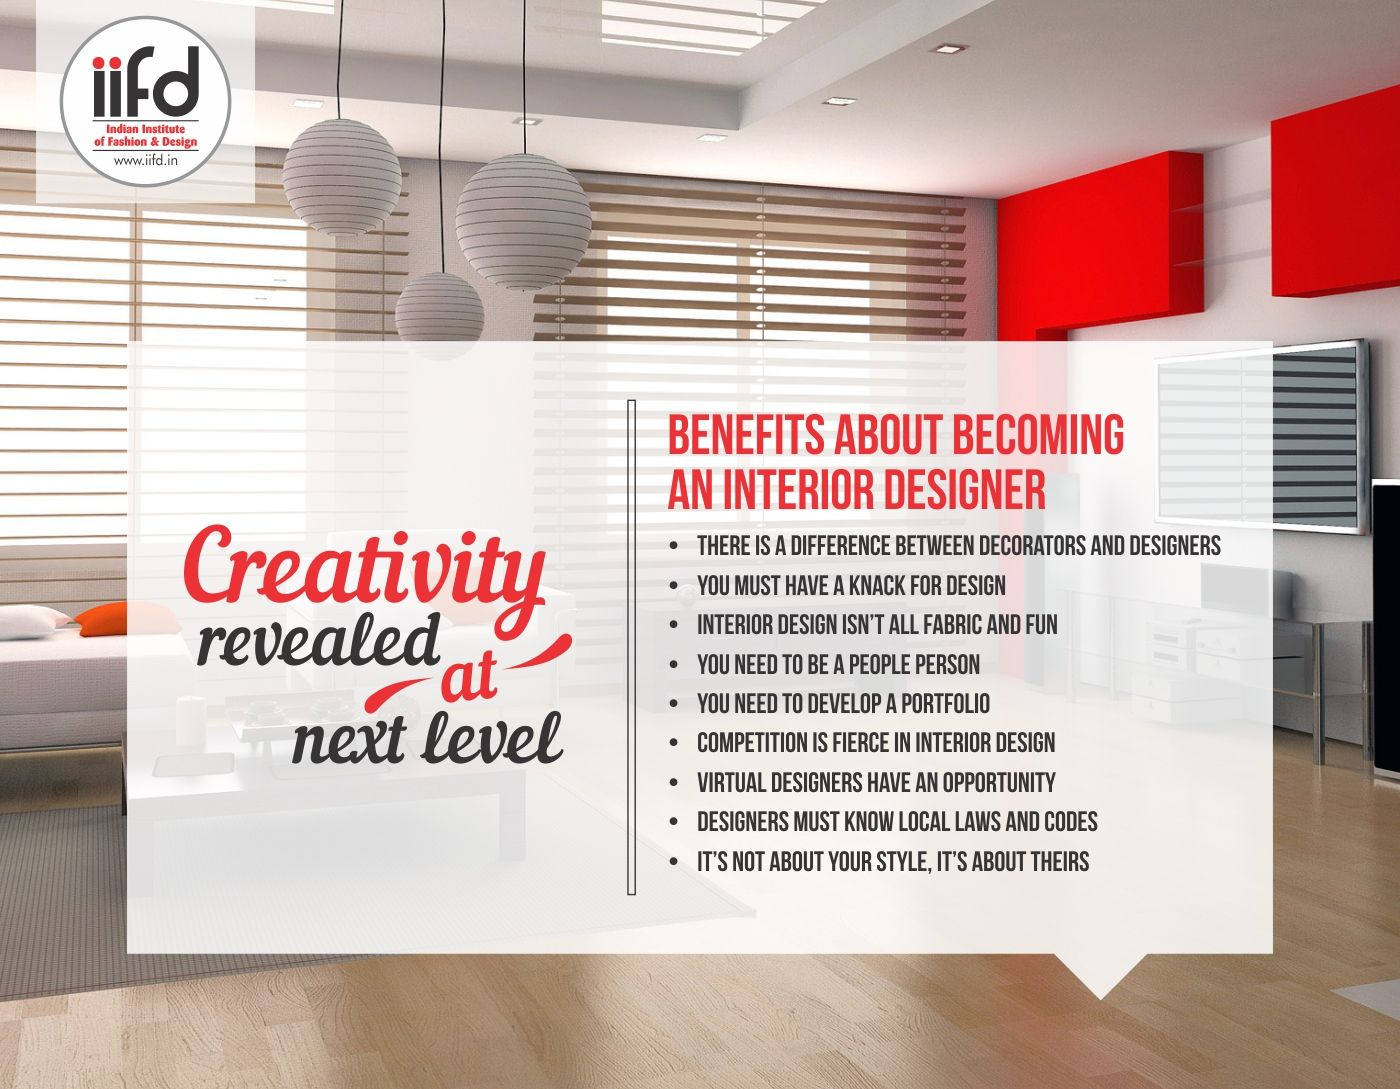 Benefits About Becoming An Interior Designer For Interior Designing Courses Contact 09041766699 Iifd C Interior Design Virtual Virtual Design Design